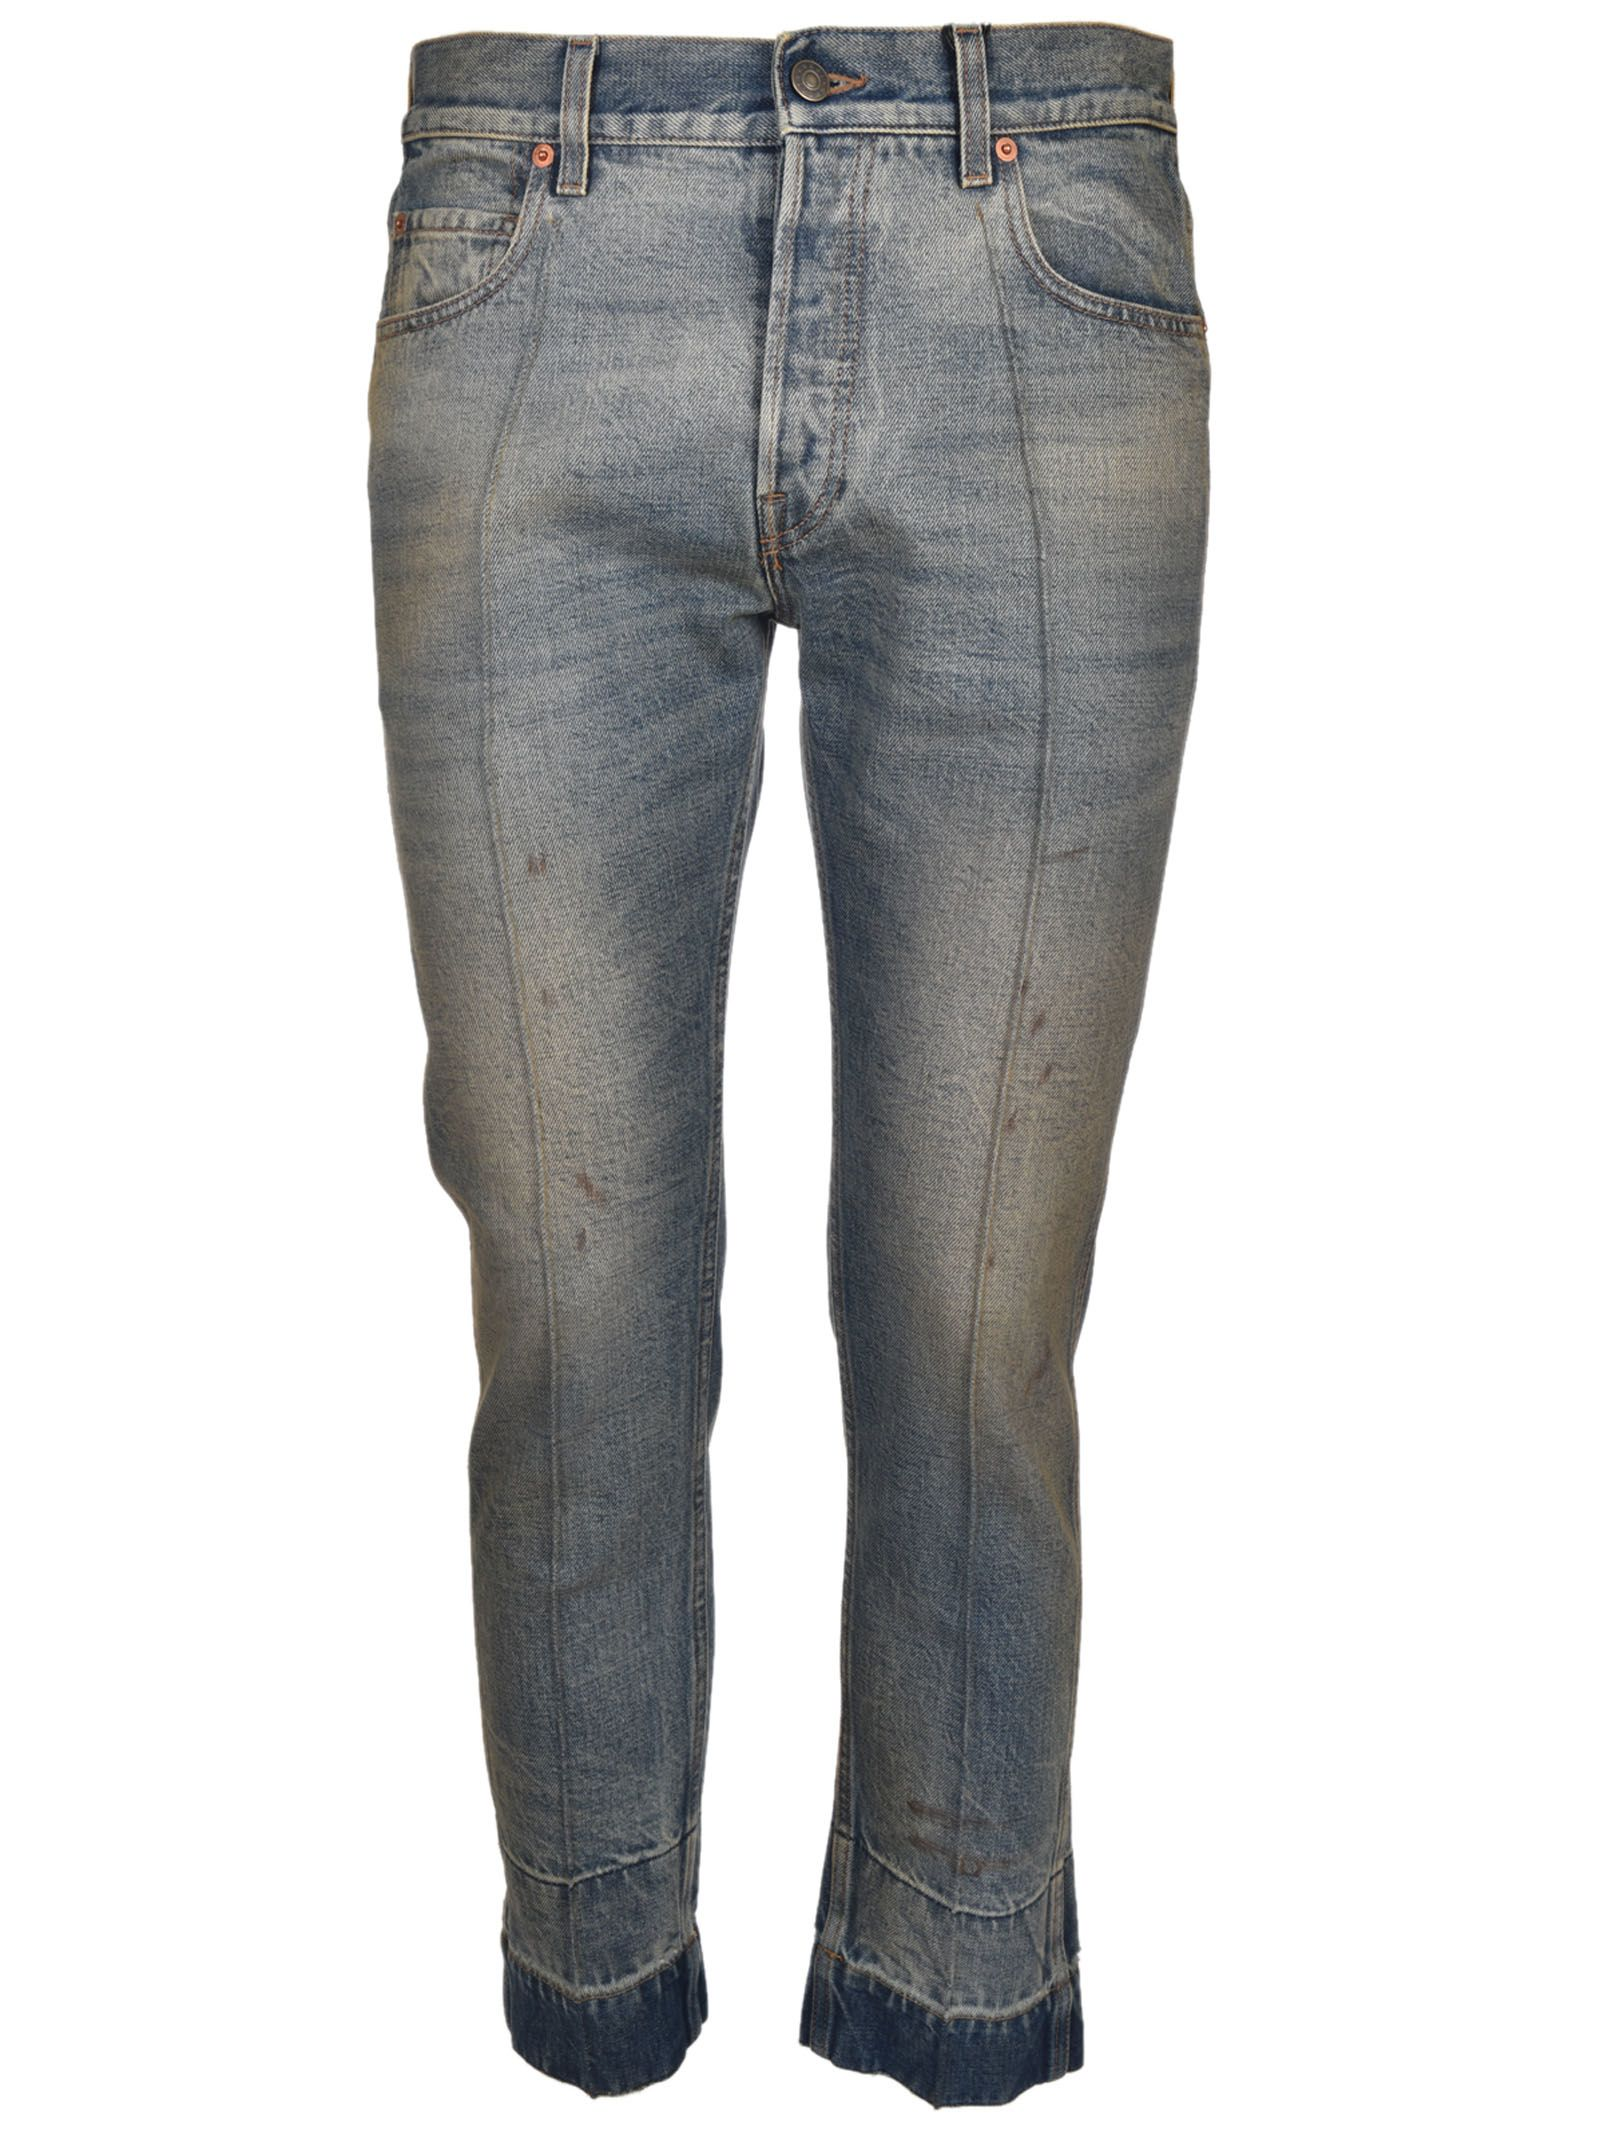 Gucci Stained Denim Punk Jeans